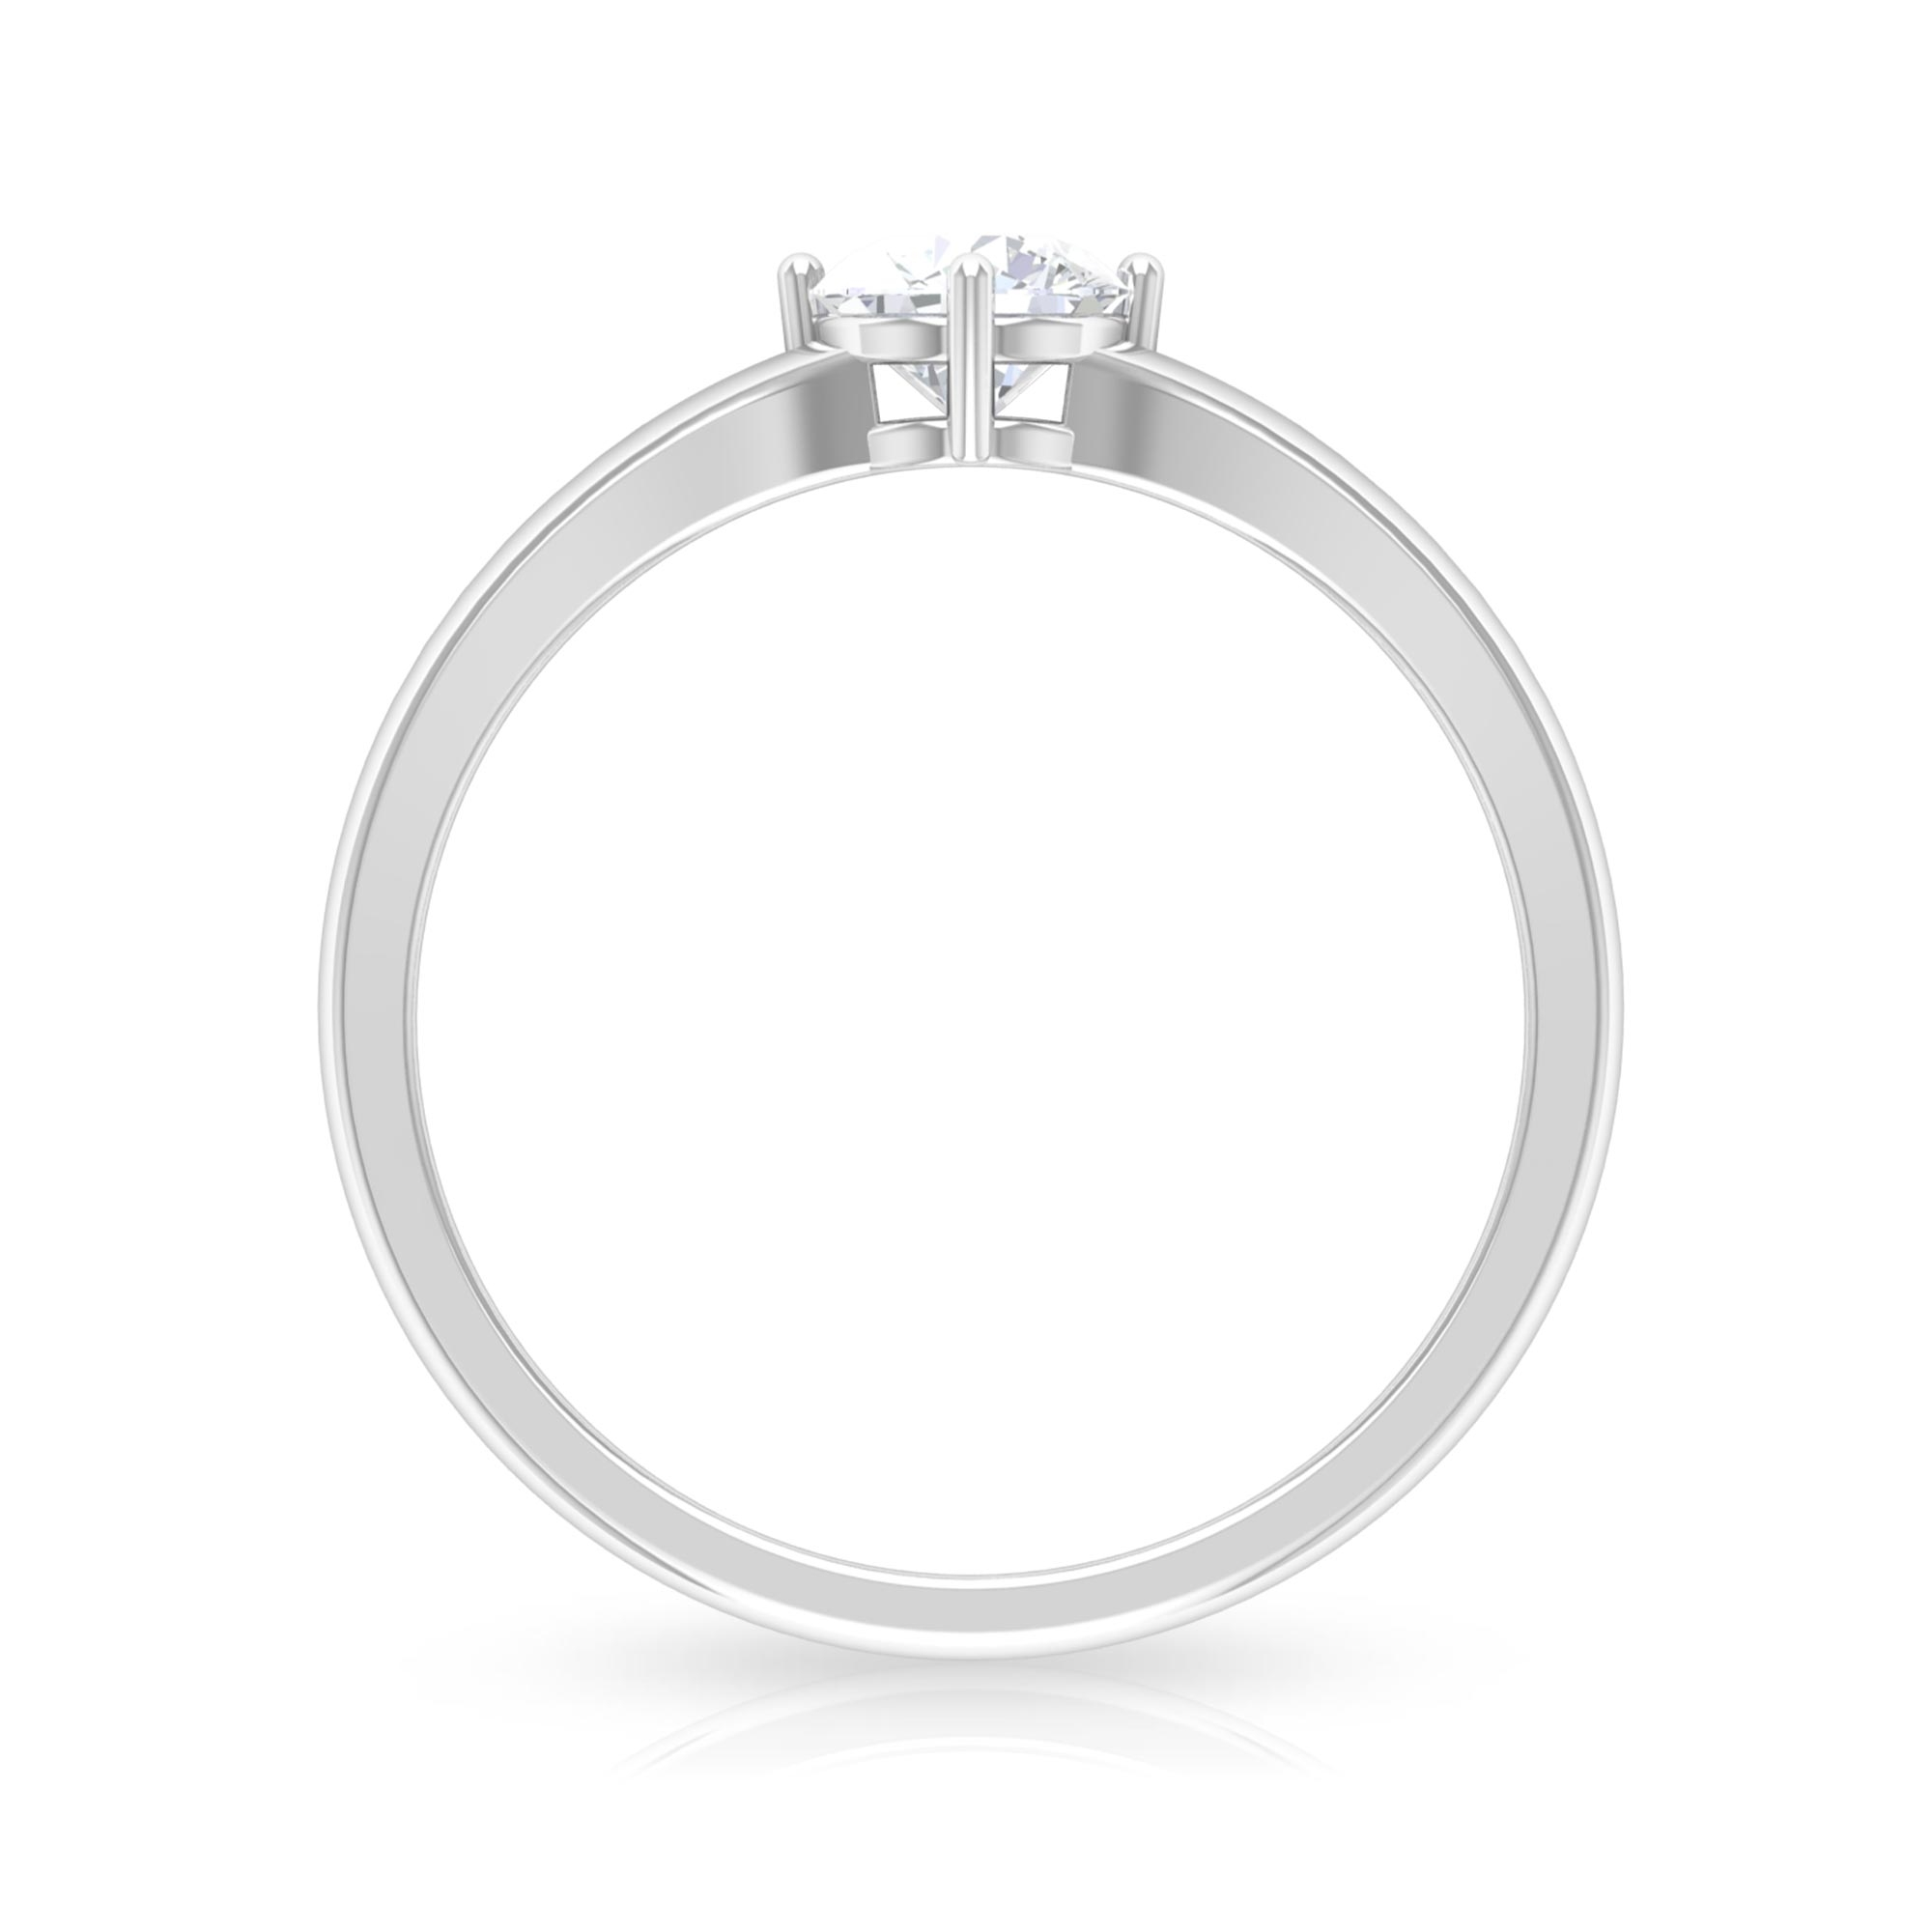 5 MM Round Cut Diamond Solitaire Ring in 4 Prong Diagonal Setting with Split Shank